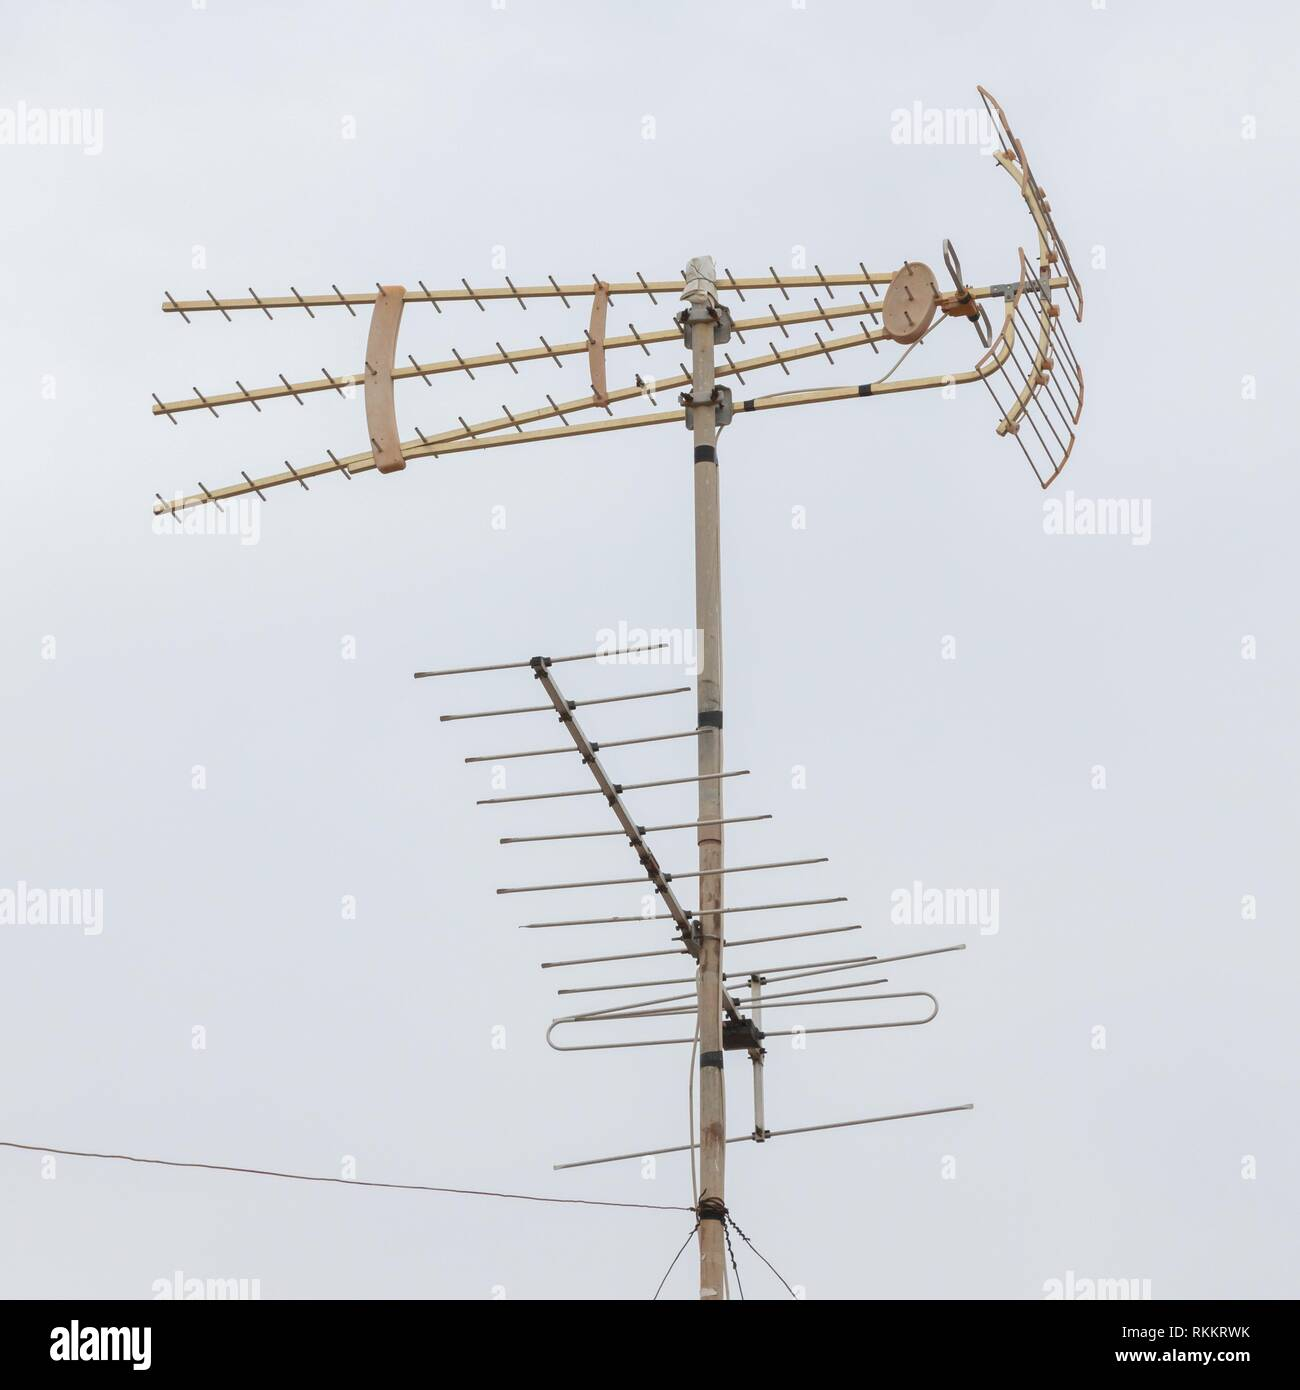 Tv Channels Stock Photos & Tv Channels Stock Images - Alamy